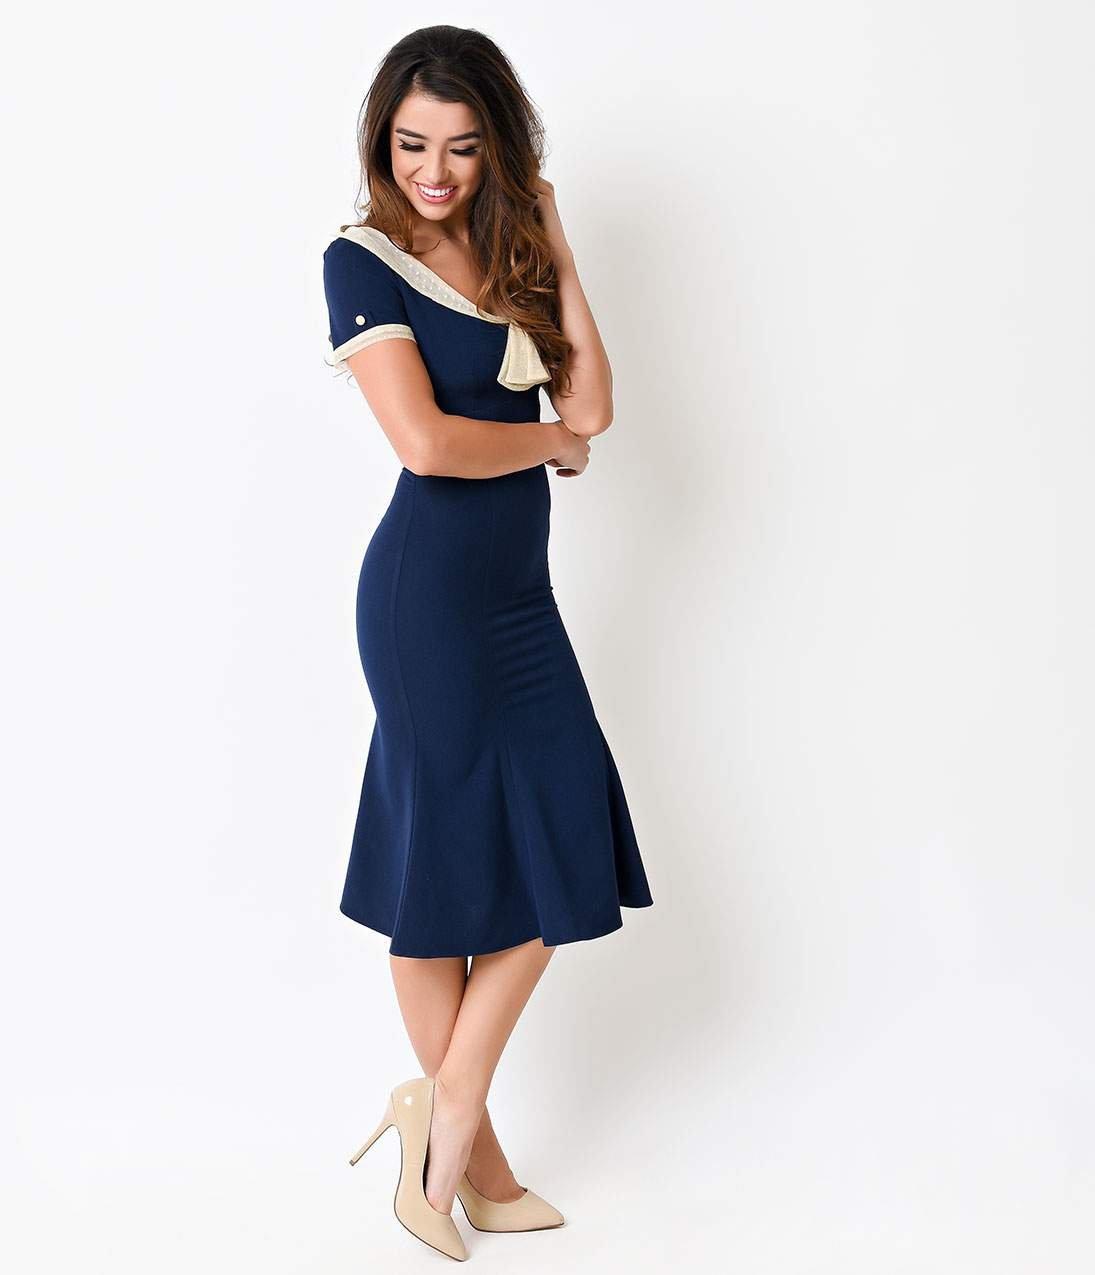 500 Vintage Style Dresses for Sale | Vintage Inspired Dresses Stop Staring 1930S Navy  Ivory Lace Cap Sleeve Railene Dress $168.00 AT vintagedancer.com